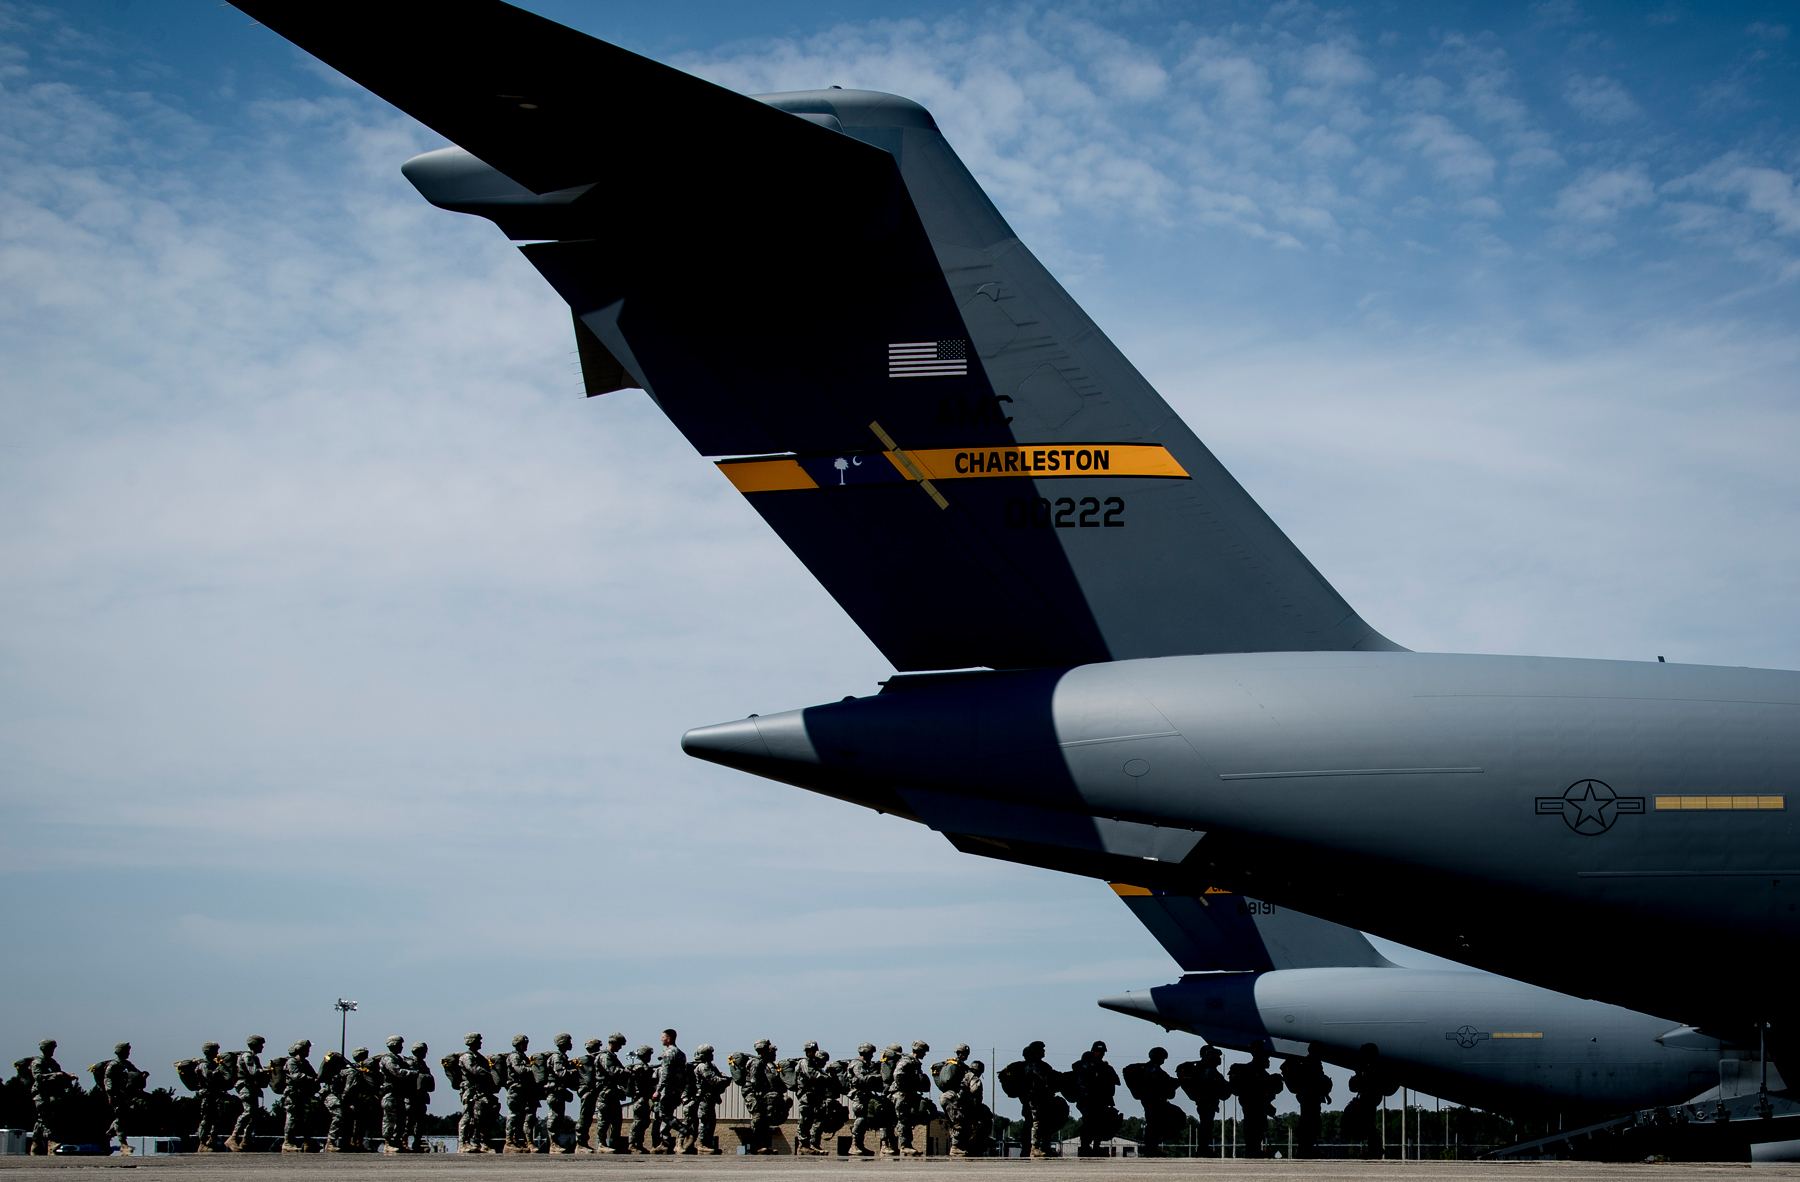 U.S. Soldiers assigned to the 82nd Airborne Division file into an Air Force C-17 Globemaster III aircraft March 27, 2014, at Ft. Bragg, N.C., during exercise Raging Moose. The large-formation exercise was designed to meet more than 500 operational and training objectives and included airdrops, aerial refueling operations and aerial formations. (DoD photo by Airman 1st Class Clayton Cupit, U.S. Air Force /Released)